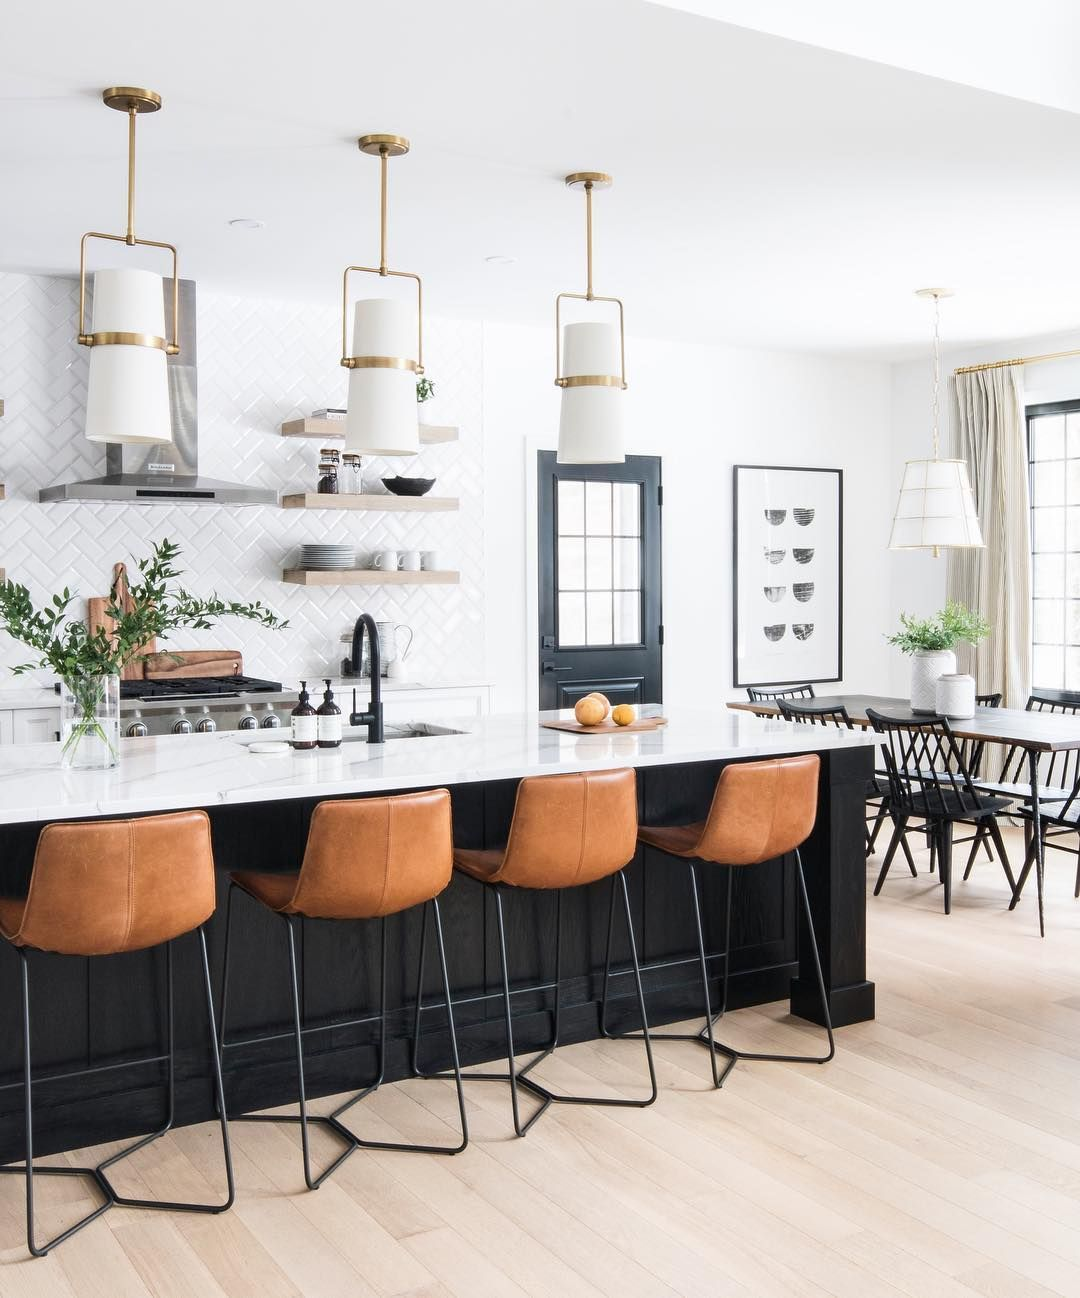 Leclair Decor On Instagram Sunny Views From The Leclaircarp Kitchen Eat In Table Chairs Pendant And Art From Home Kitchens Home Decor Inspiration Home